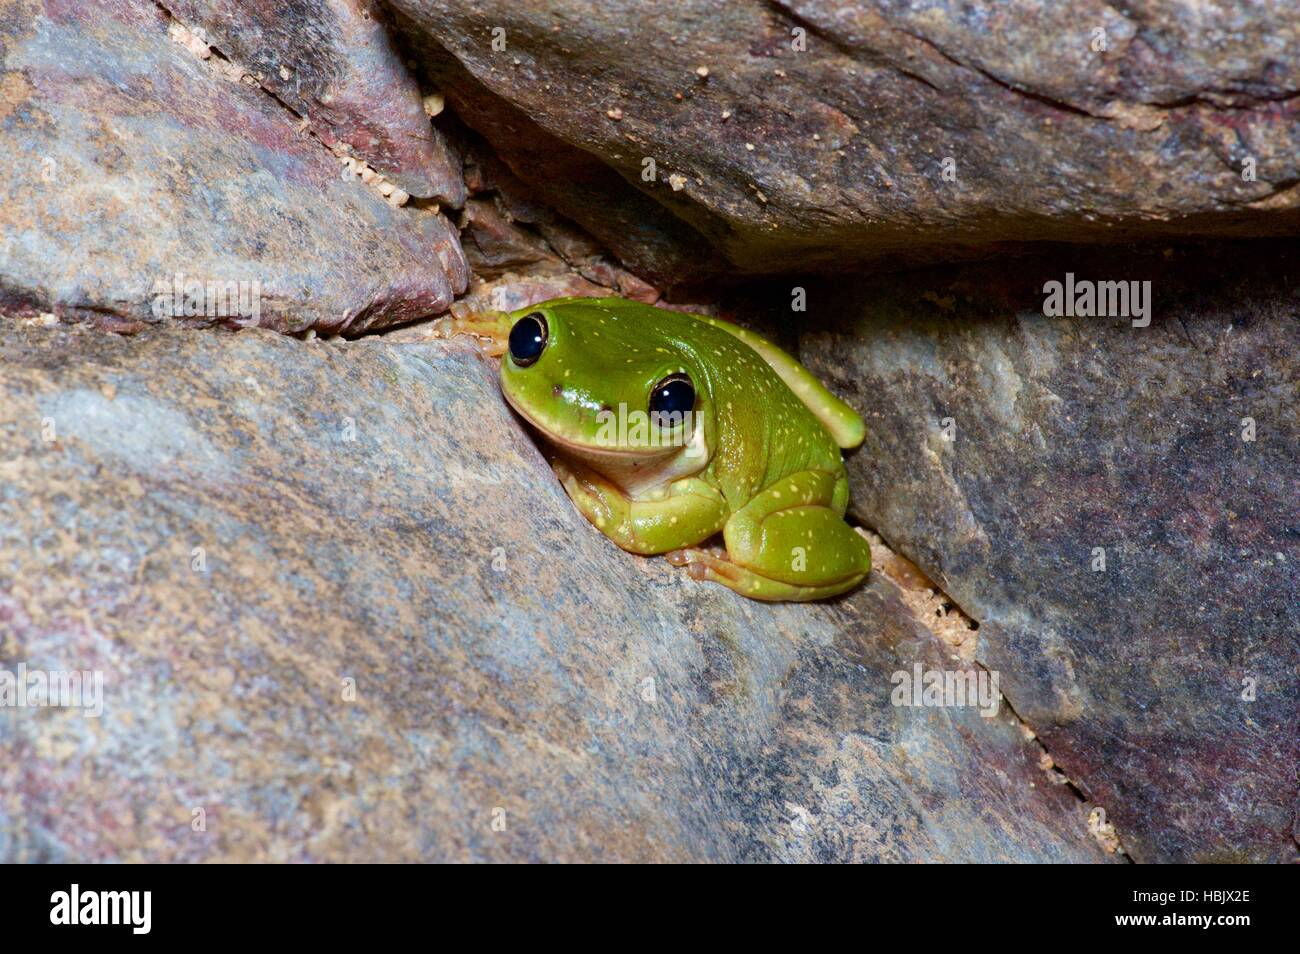 A Centralian Tree Frog (Litoria gilleni) crouched on a boulder in Ormiston Gorge, Northern Territory, Australia - Stock Image